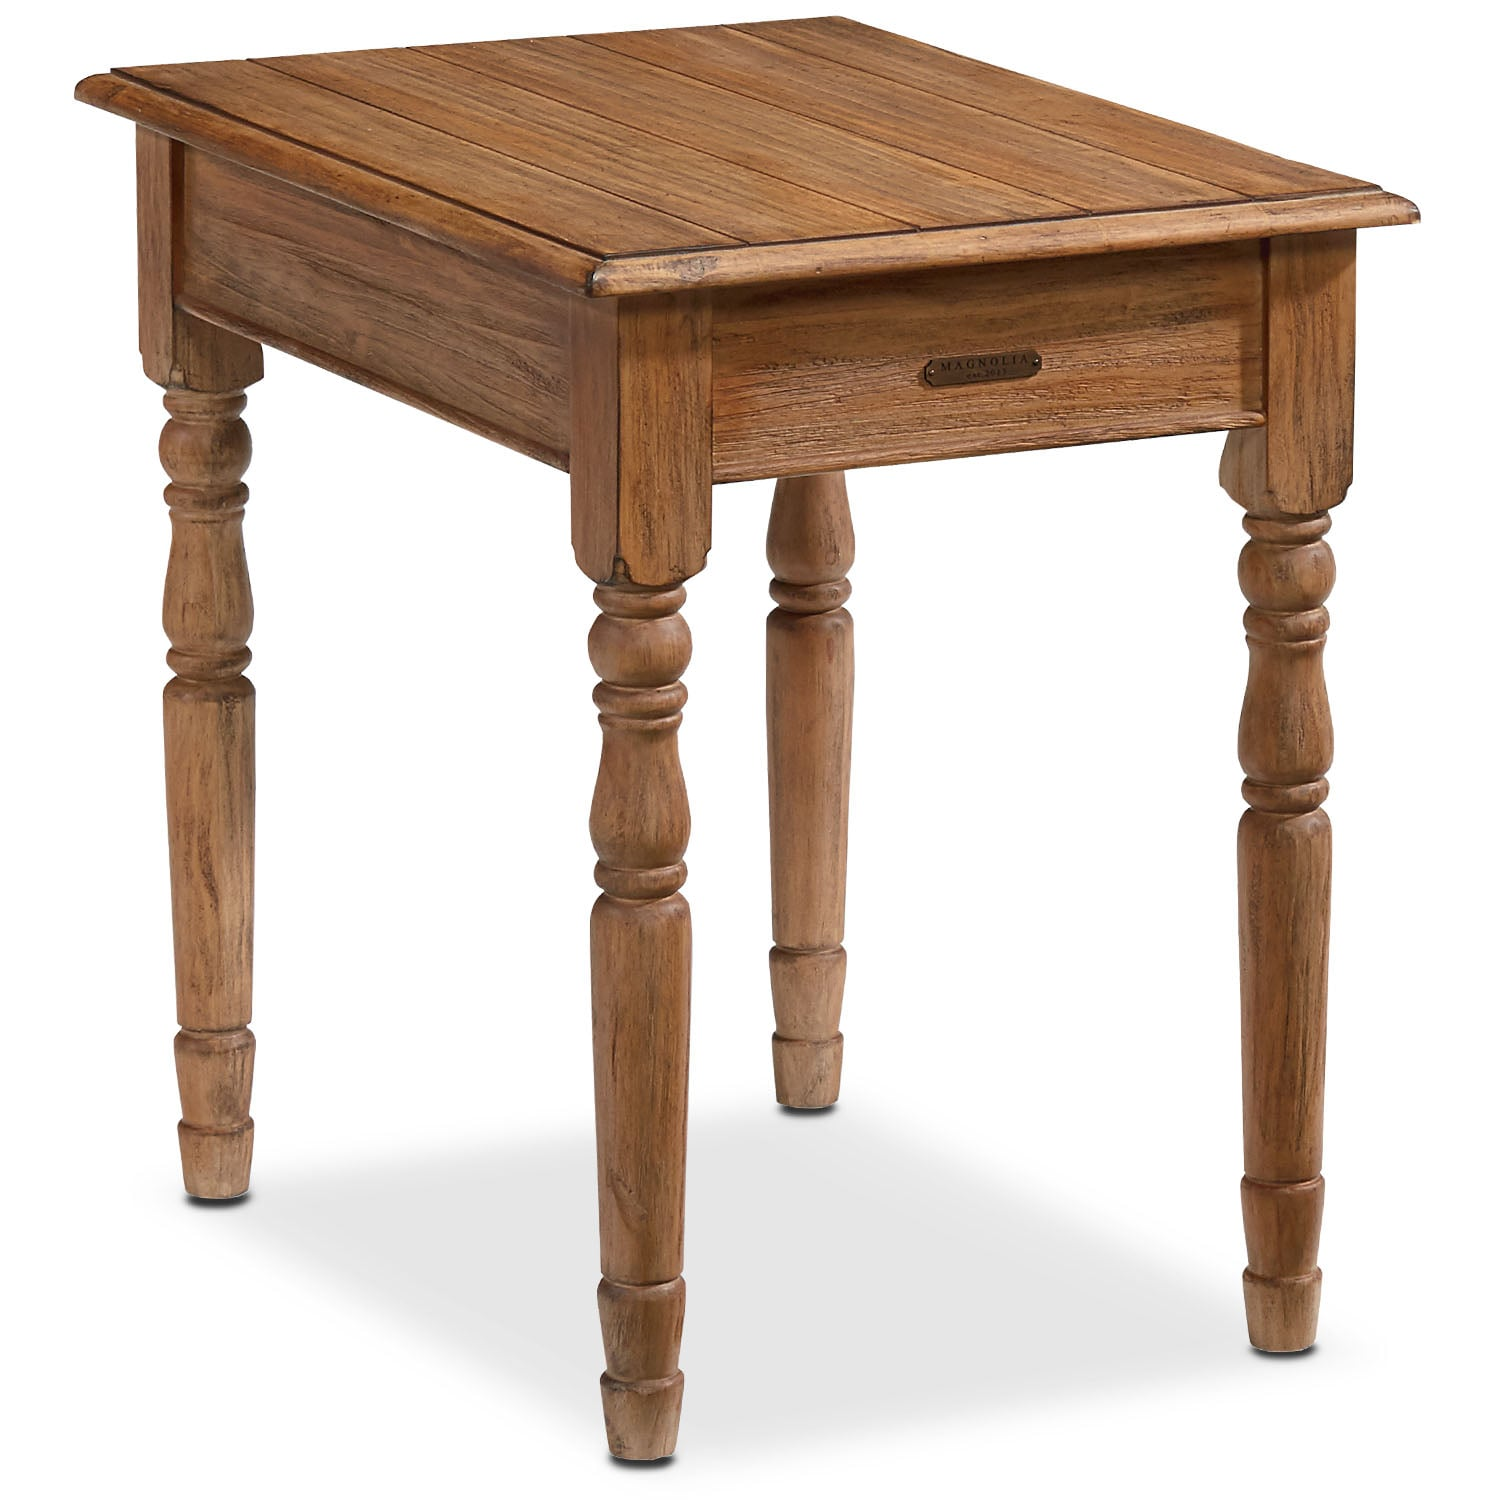 Accent and Occasional Furniture - Taper Turned End Table - Bench